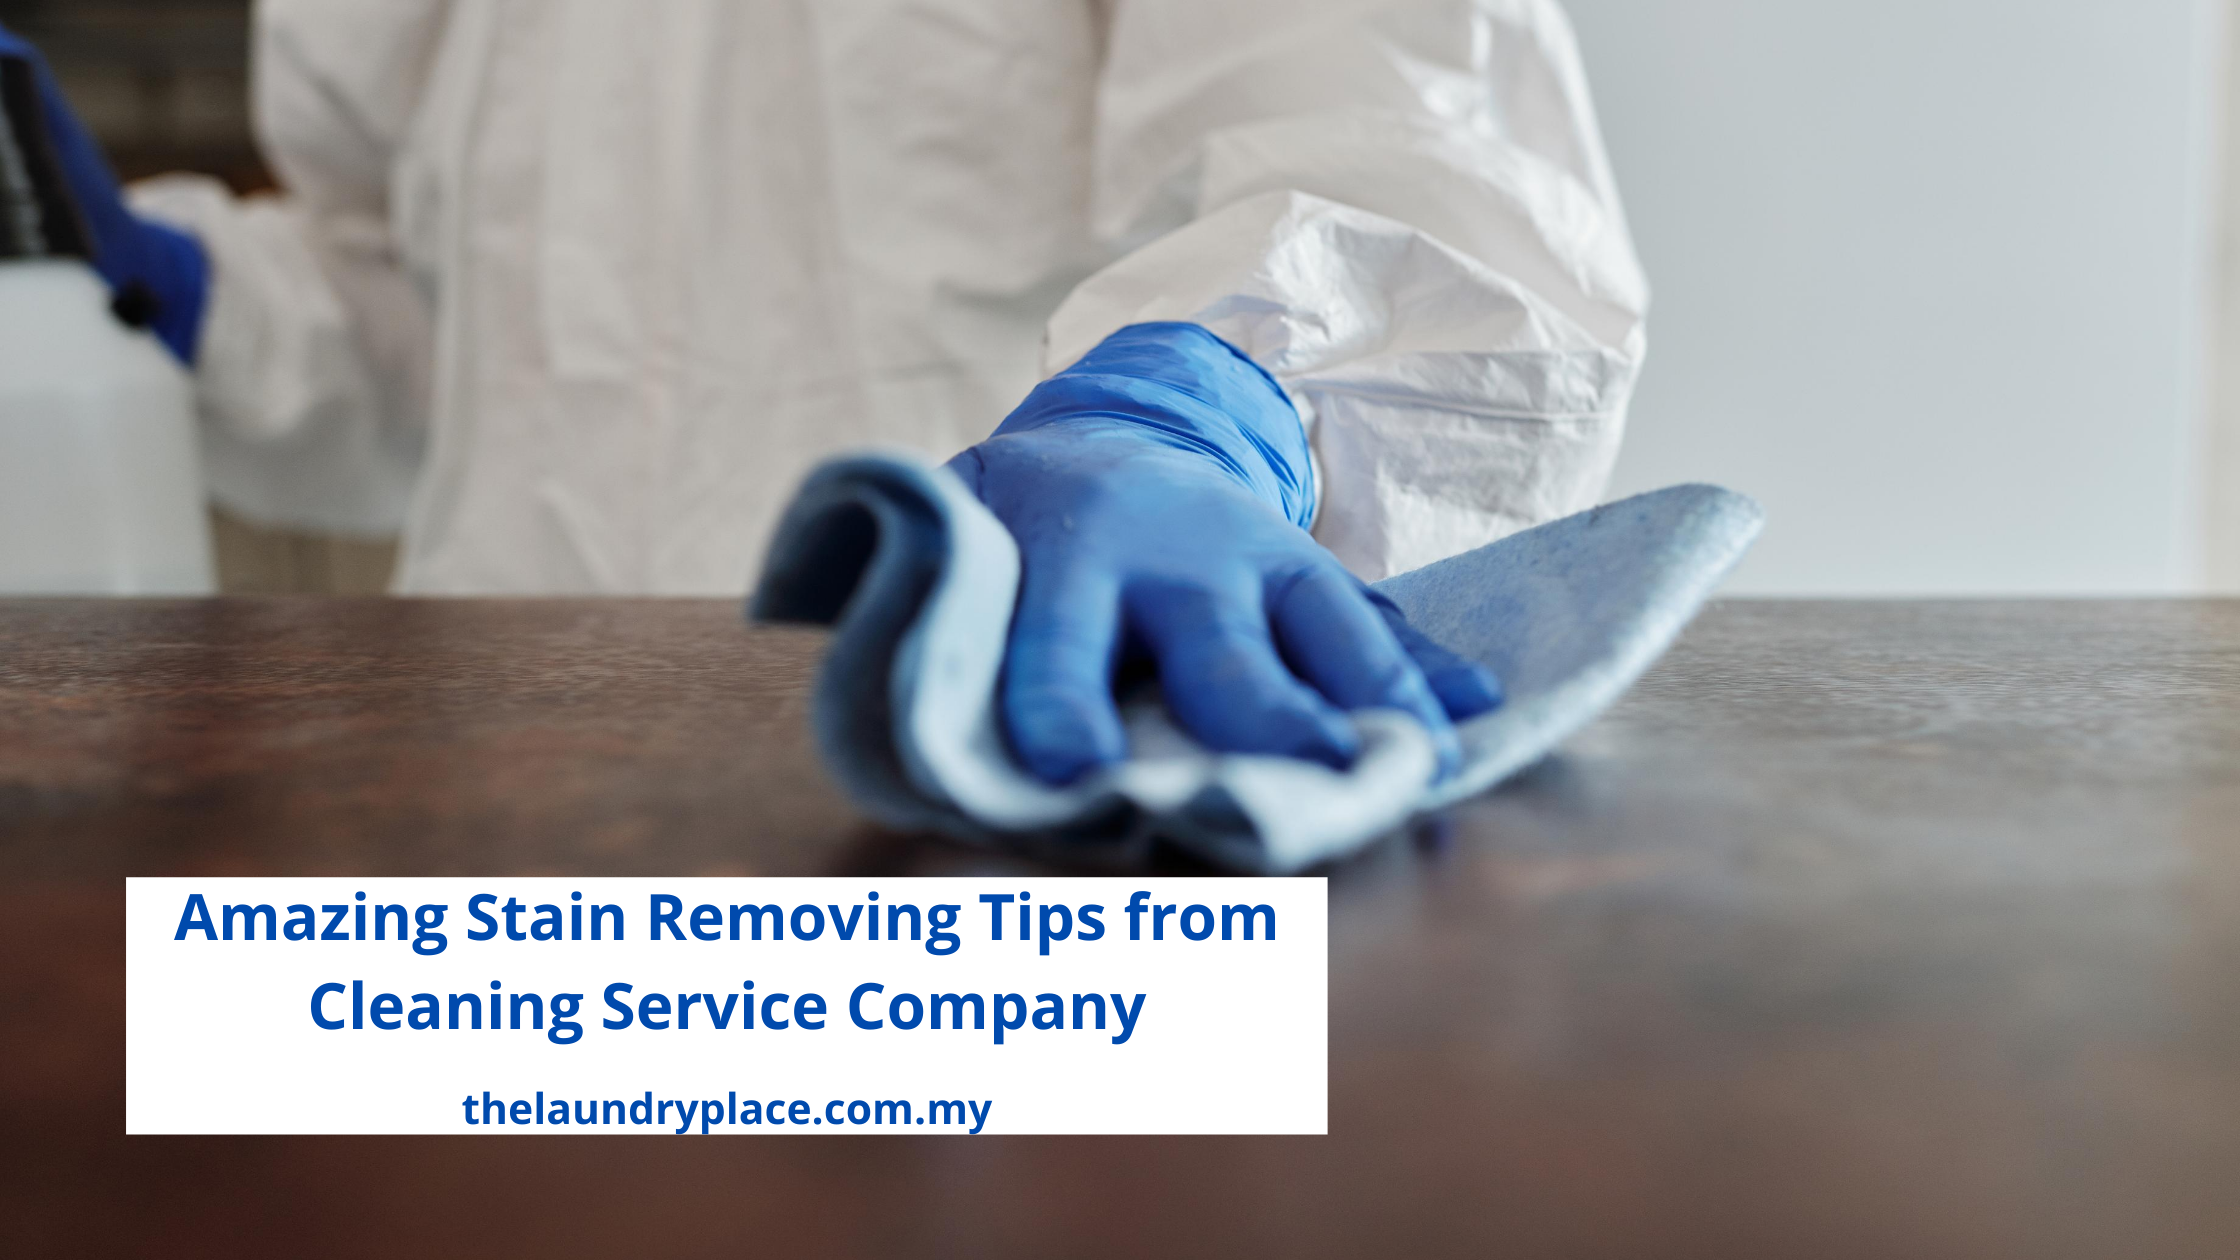 Amazing Stain Removing Tips_from_Cleaning_Service_Company